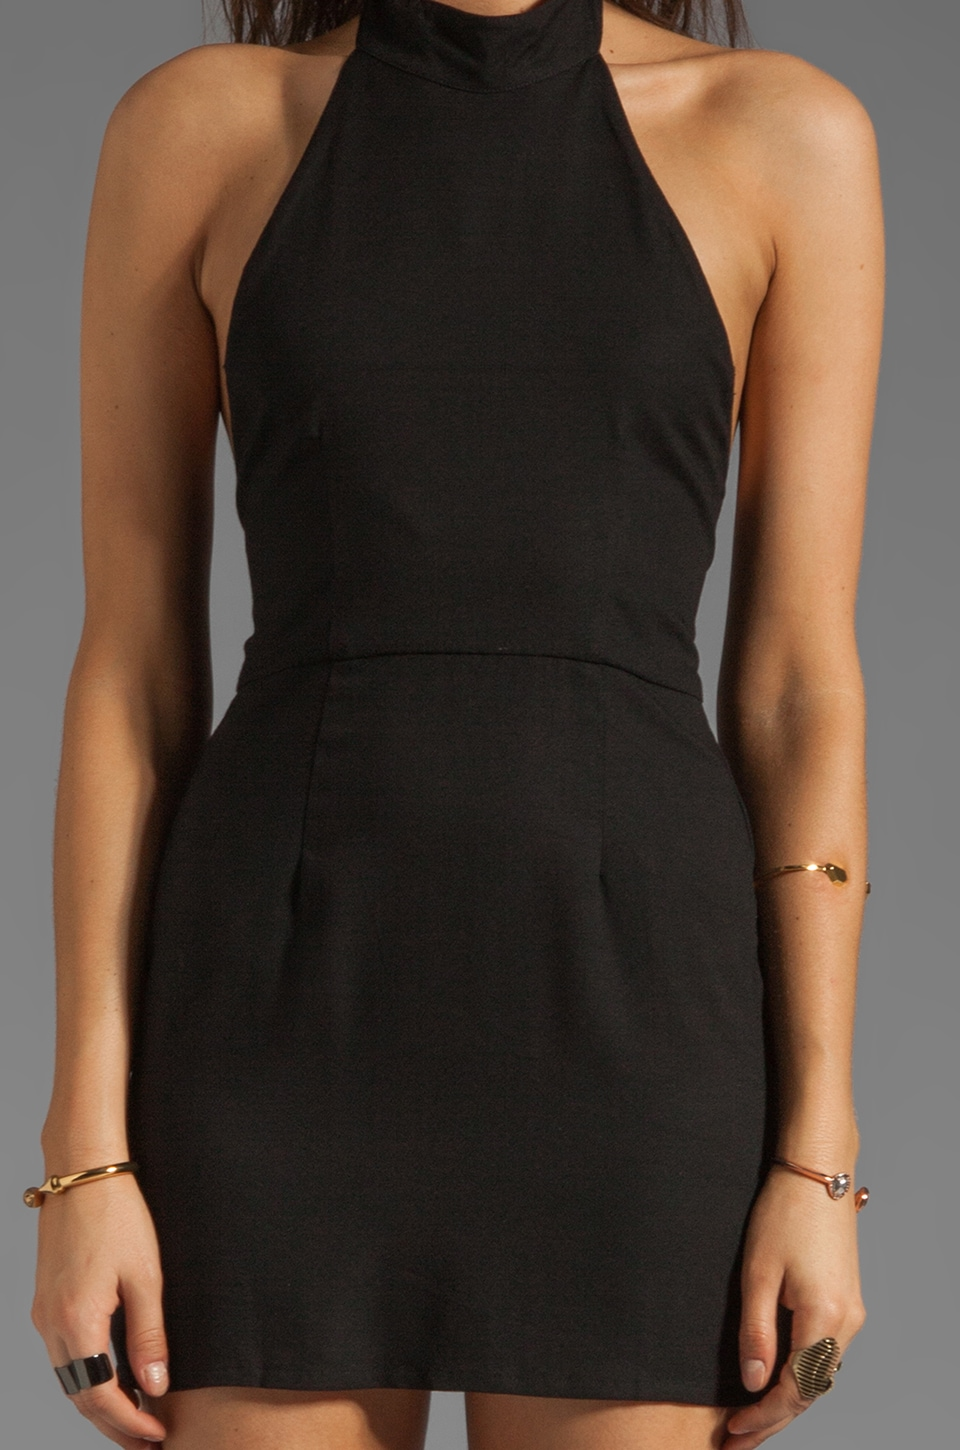 Friend of Mine Shackles Dress in Black